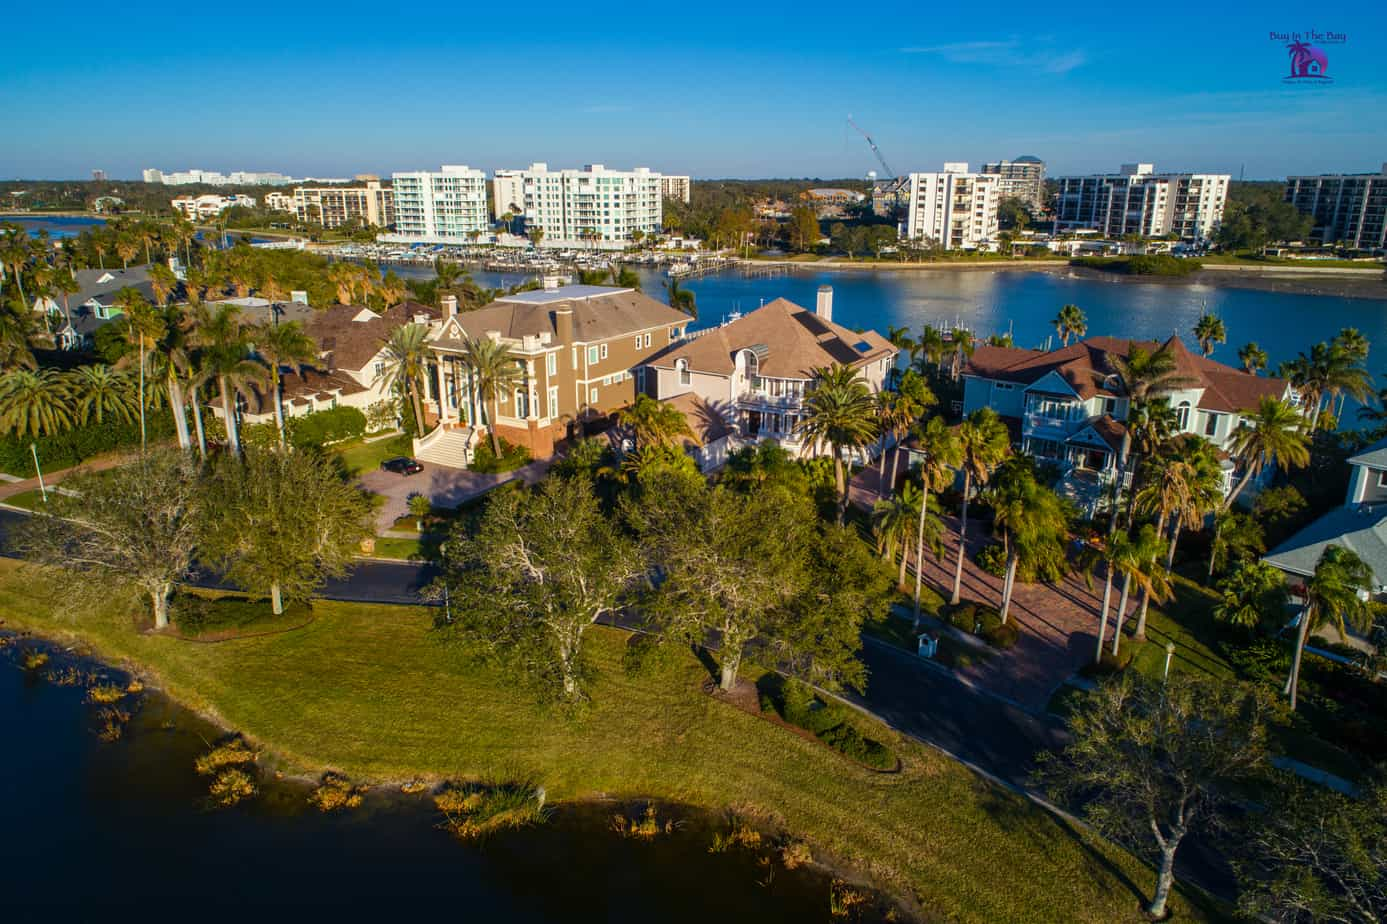 Ariel view of the Belleview Neighborhood in Belleair FL in the zip code of 33756 showing an inlet, and the Belleview Biltmore golfcourse